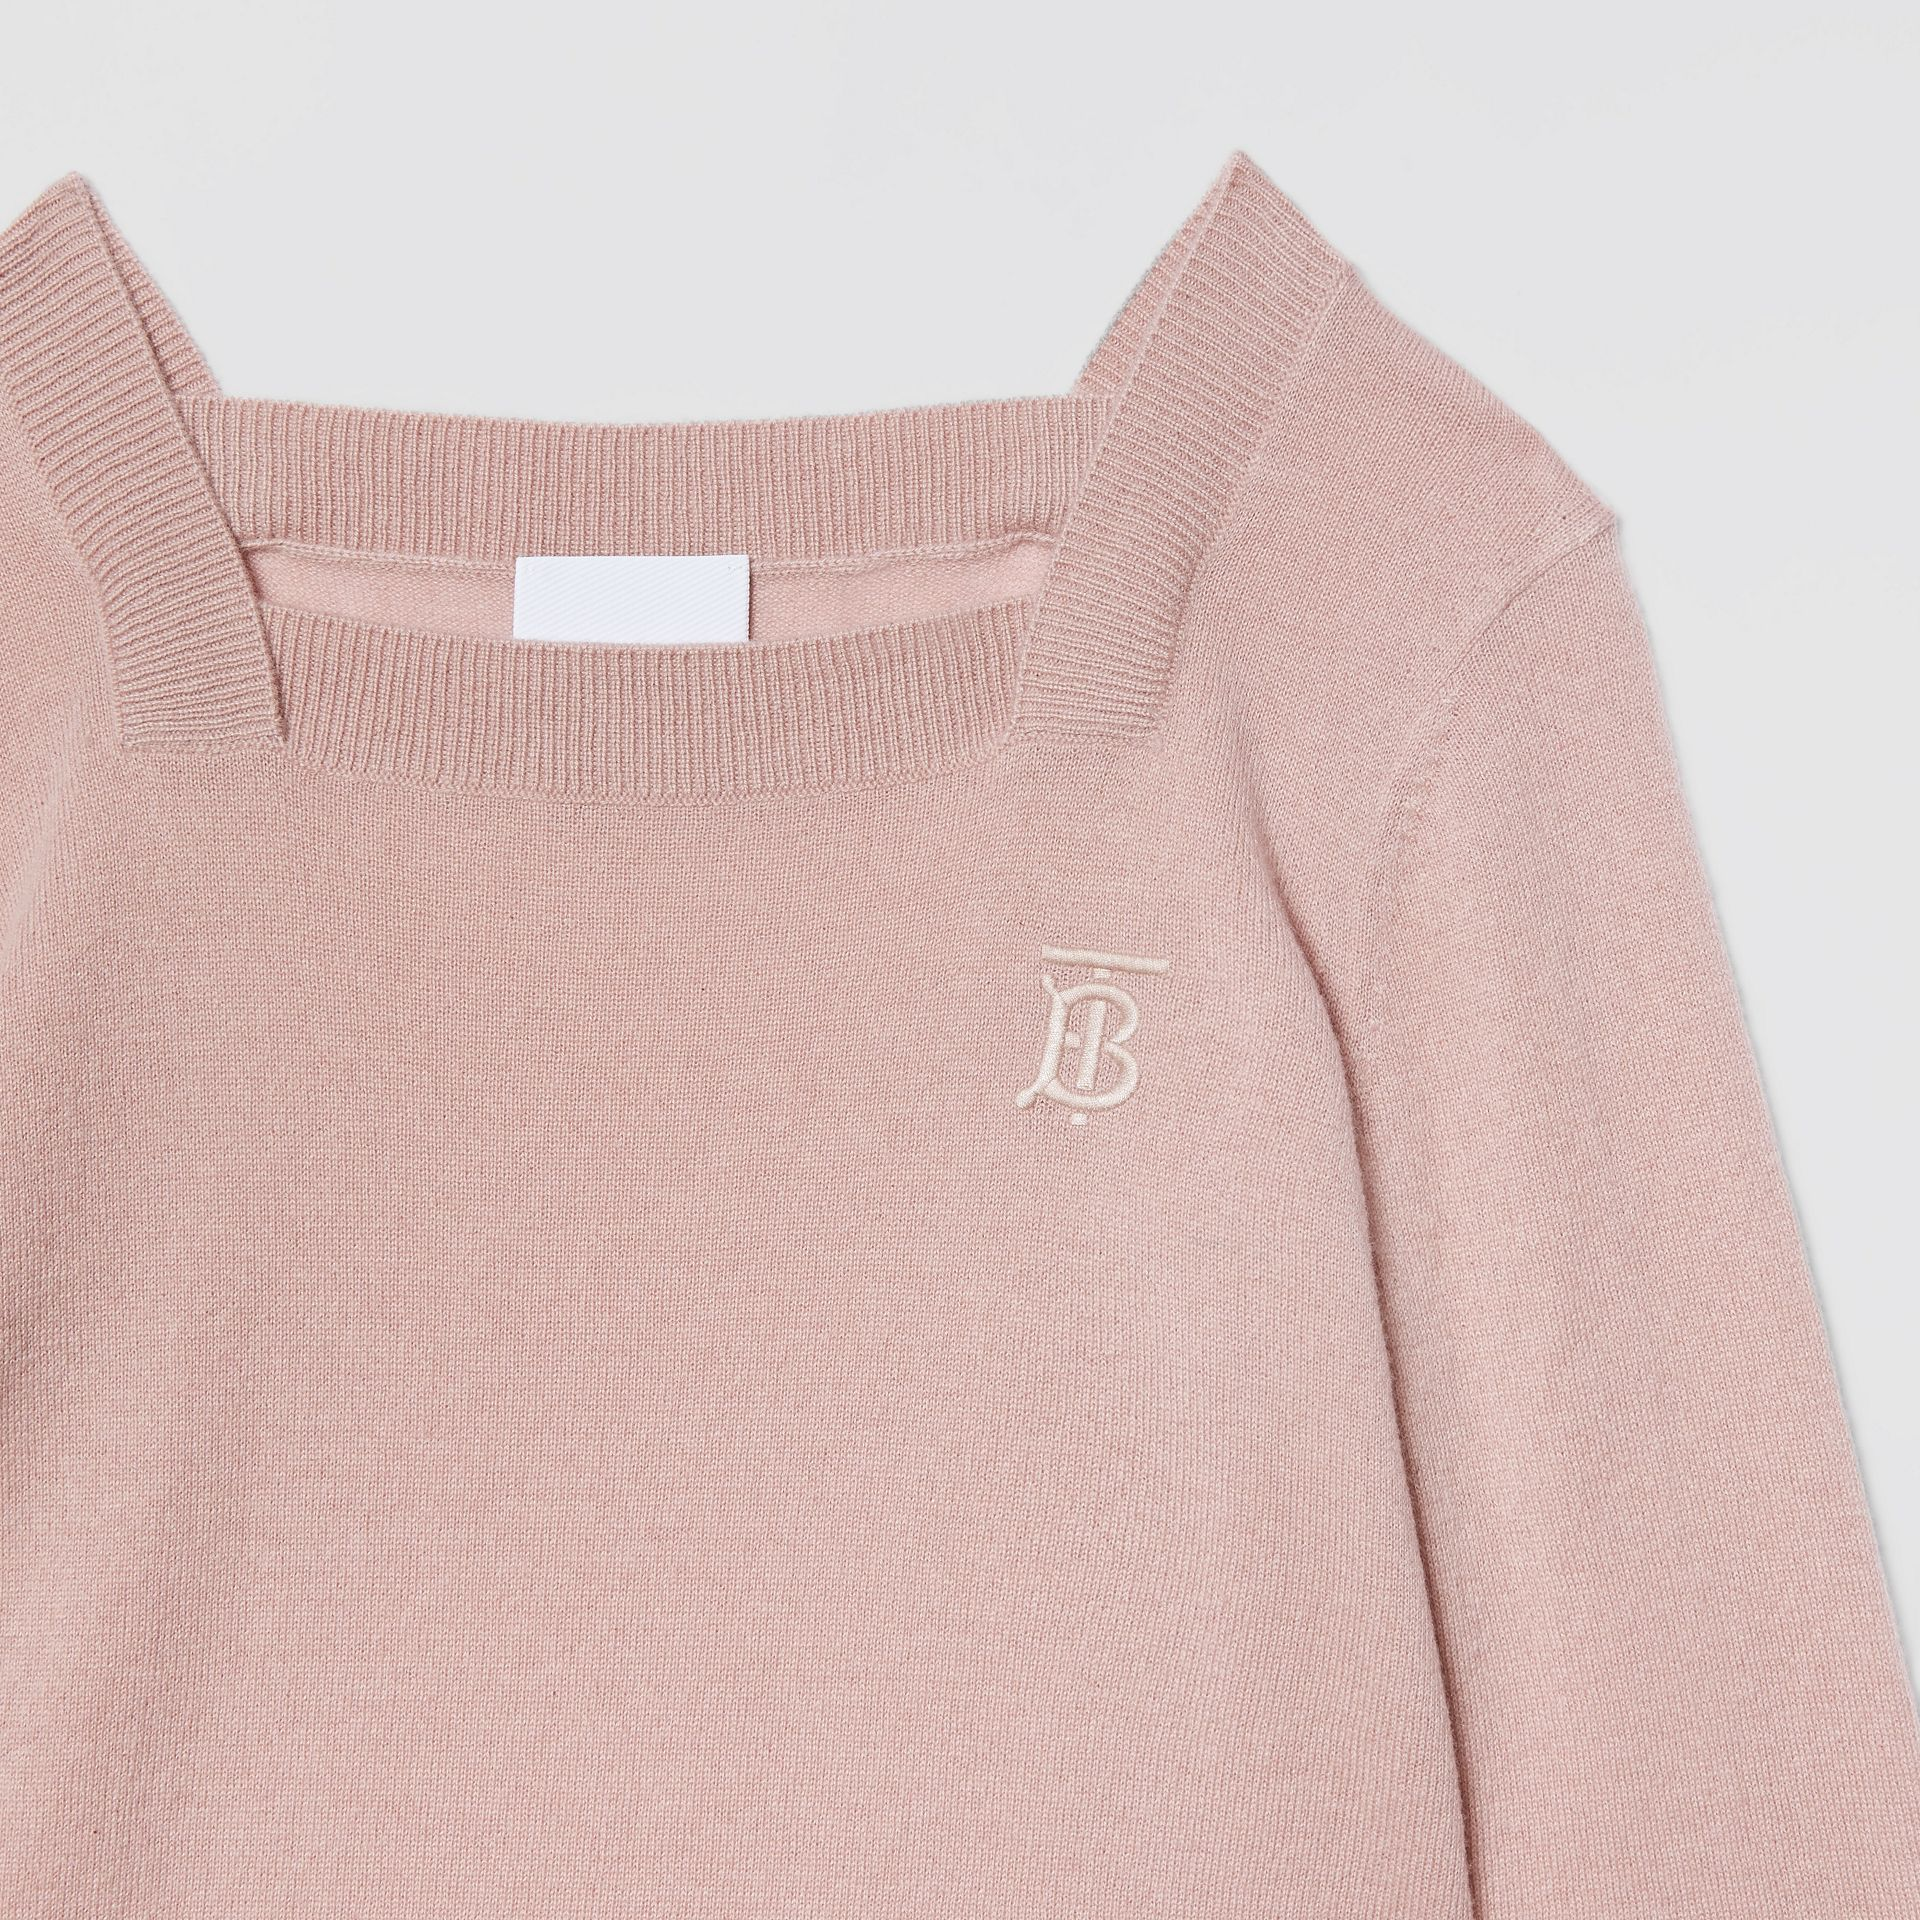 Monogram Motif Cashmere Sweater Dress in Lavender Pink | Burberry - gallery image 4